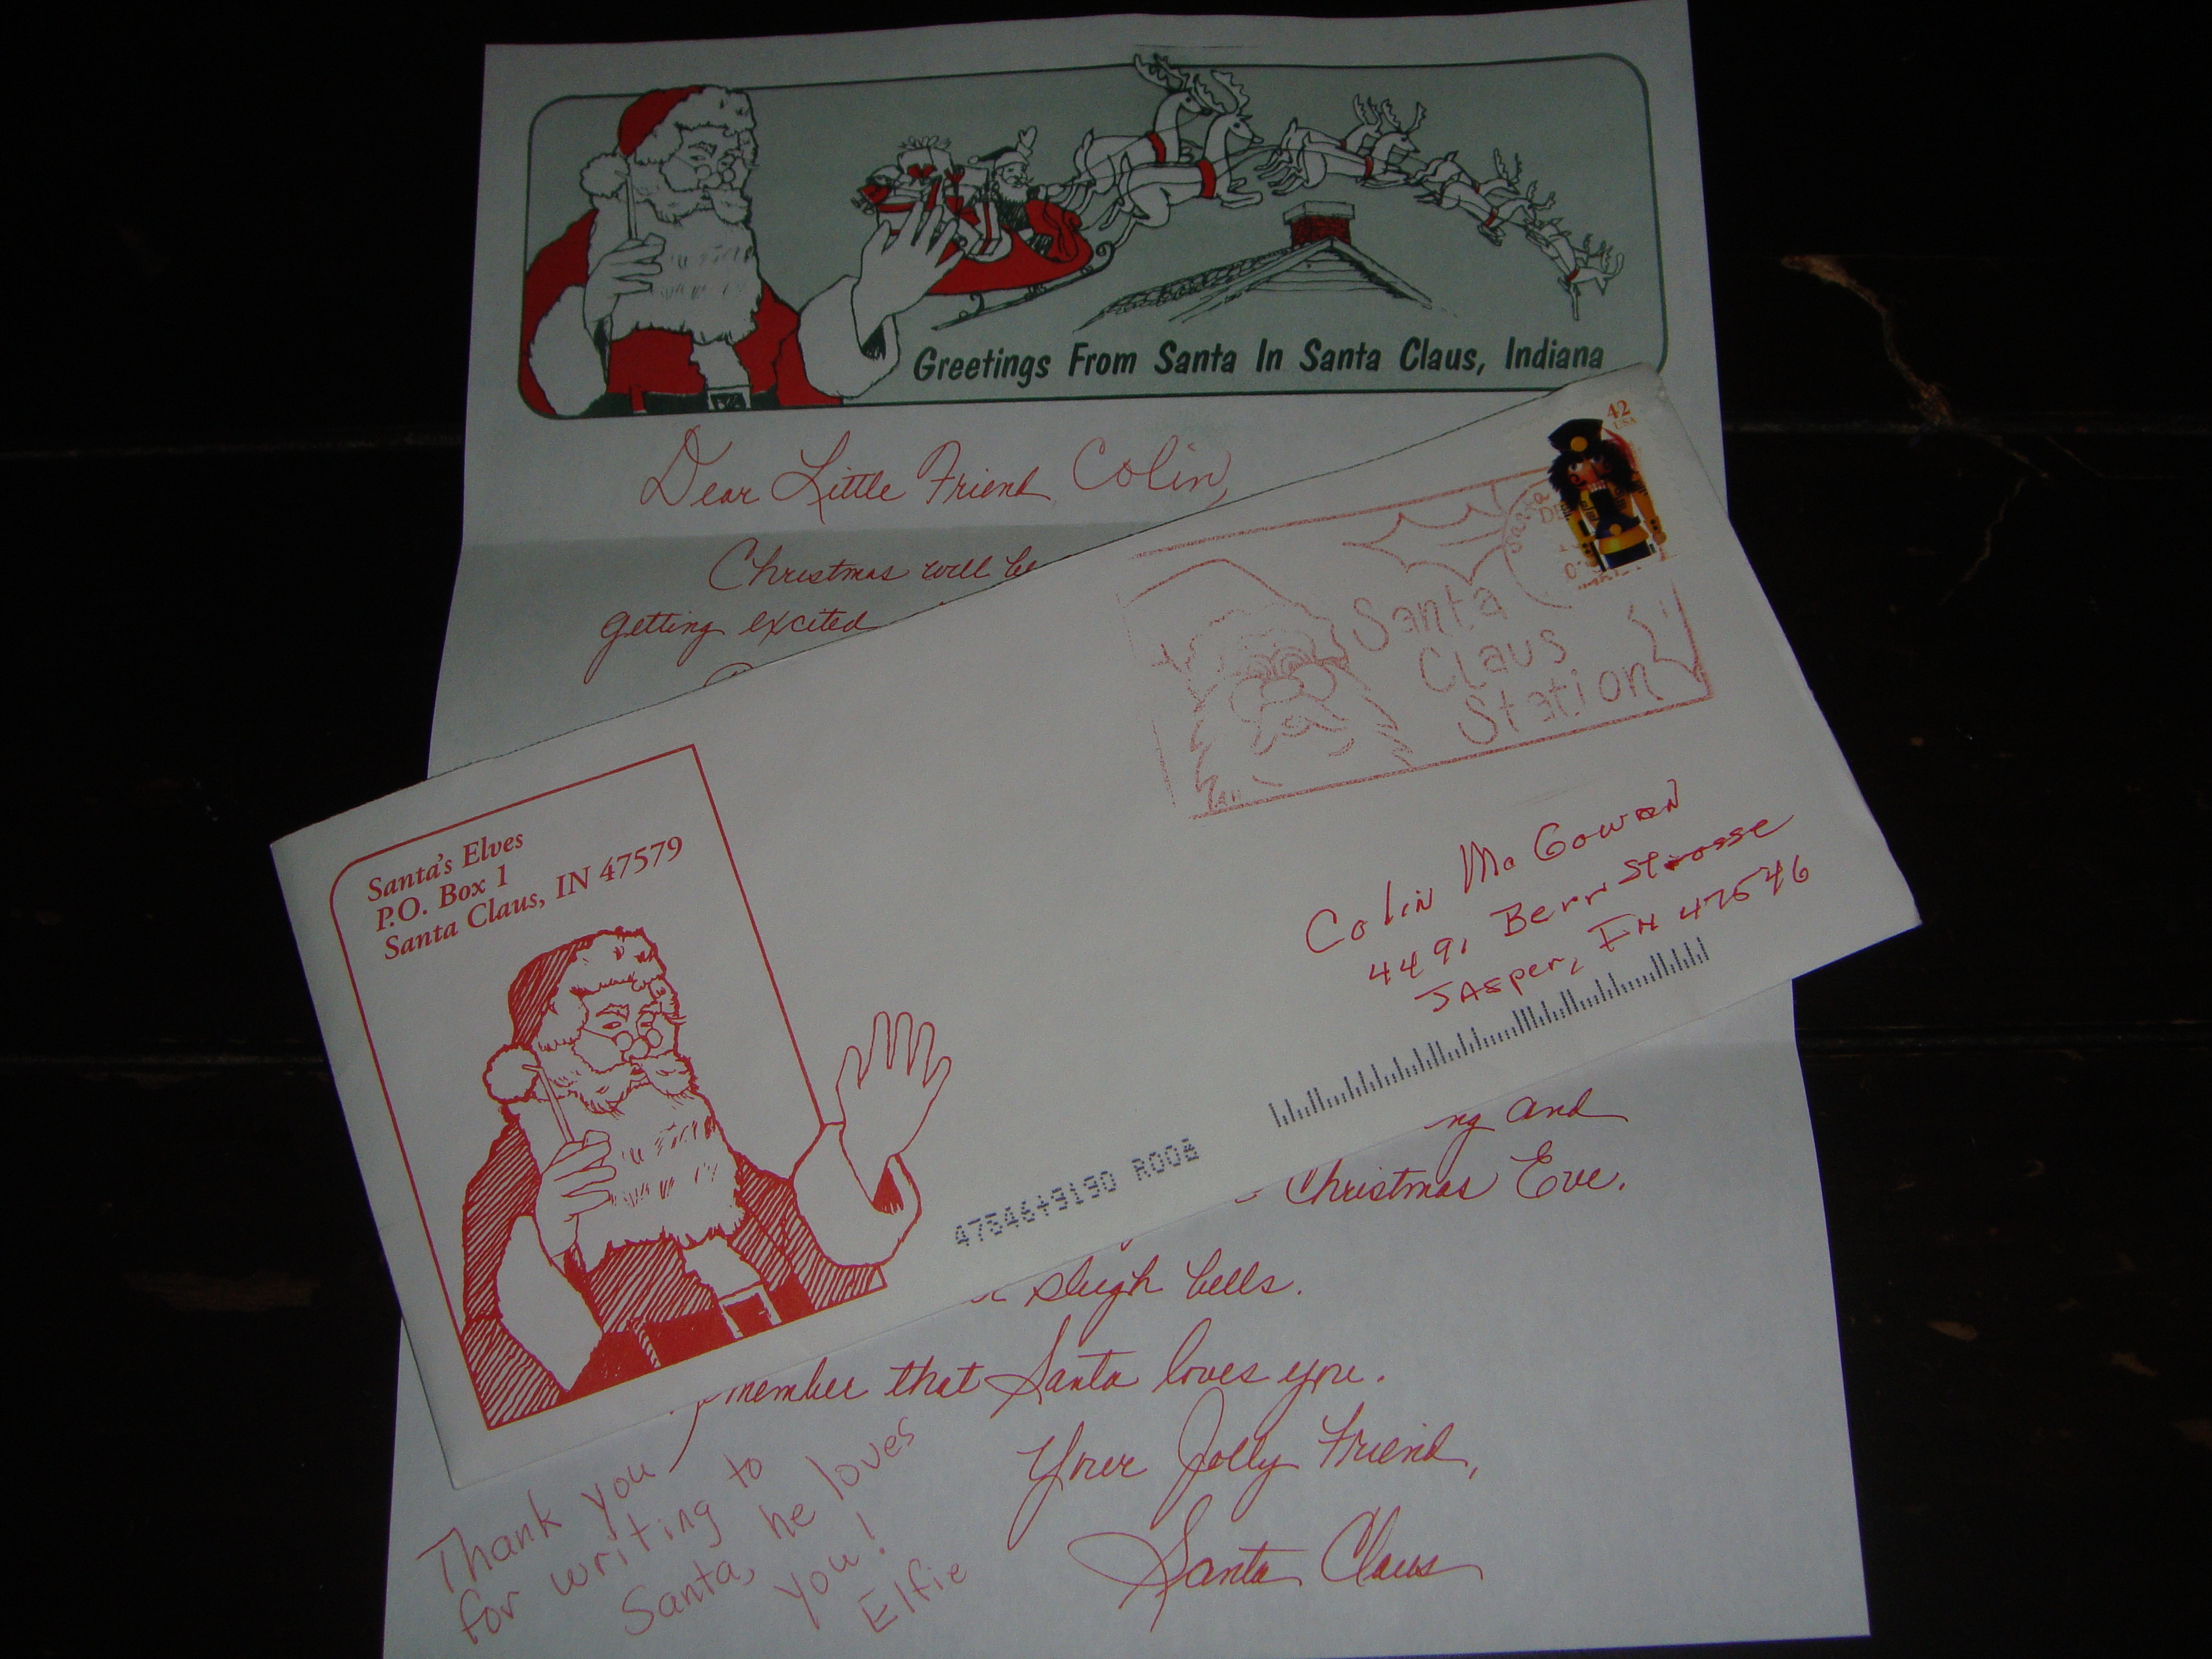 Free santa letters free letter from santa claus from santa clause